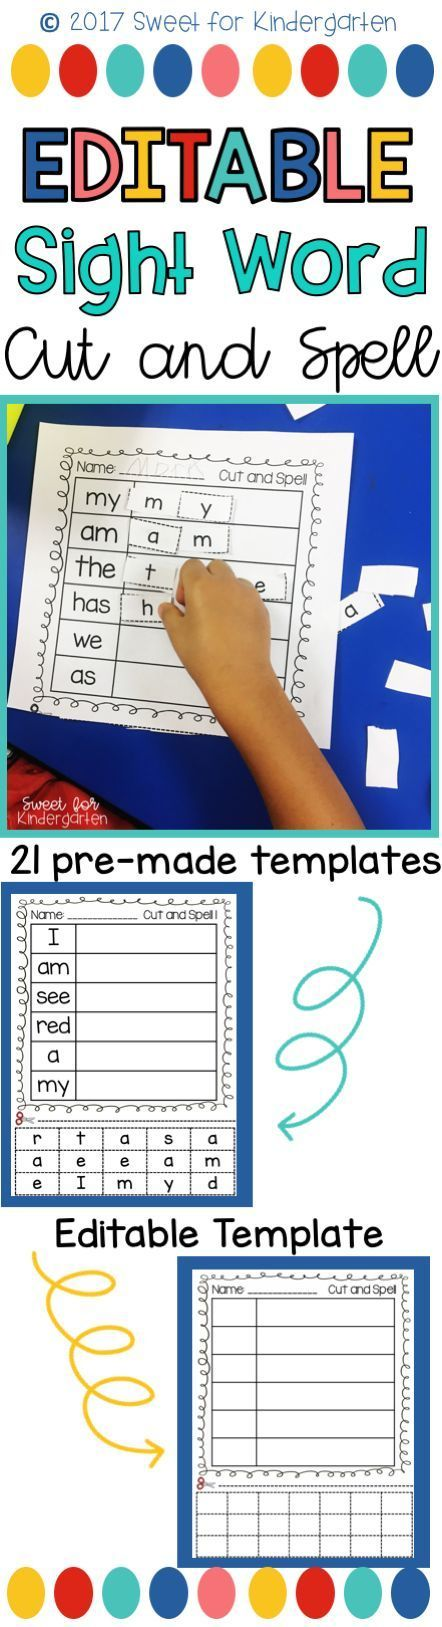 Editable Sight Word Worksheets- Just type in your weekly sight words and print! Your students can practice cutting and spelling while learning how to spell their sight words. Great for Kindergarten, 1st, or 2nd Grade!